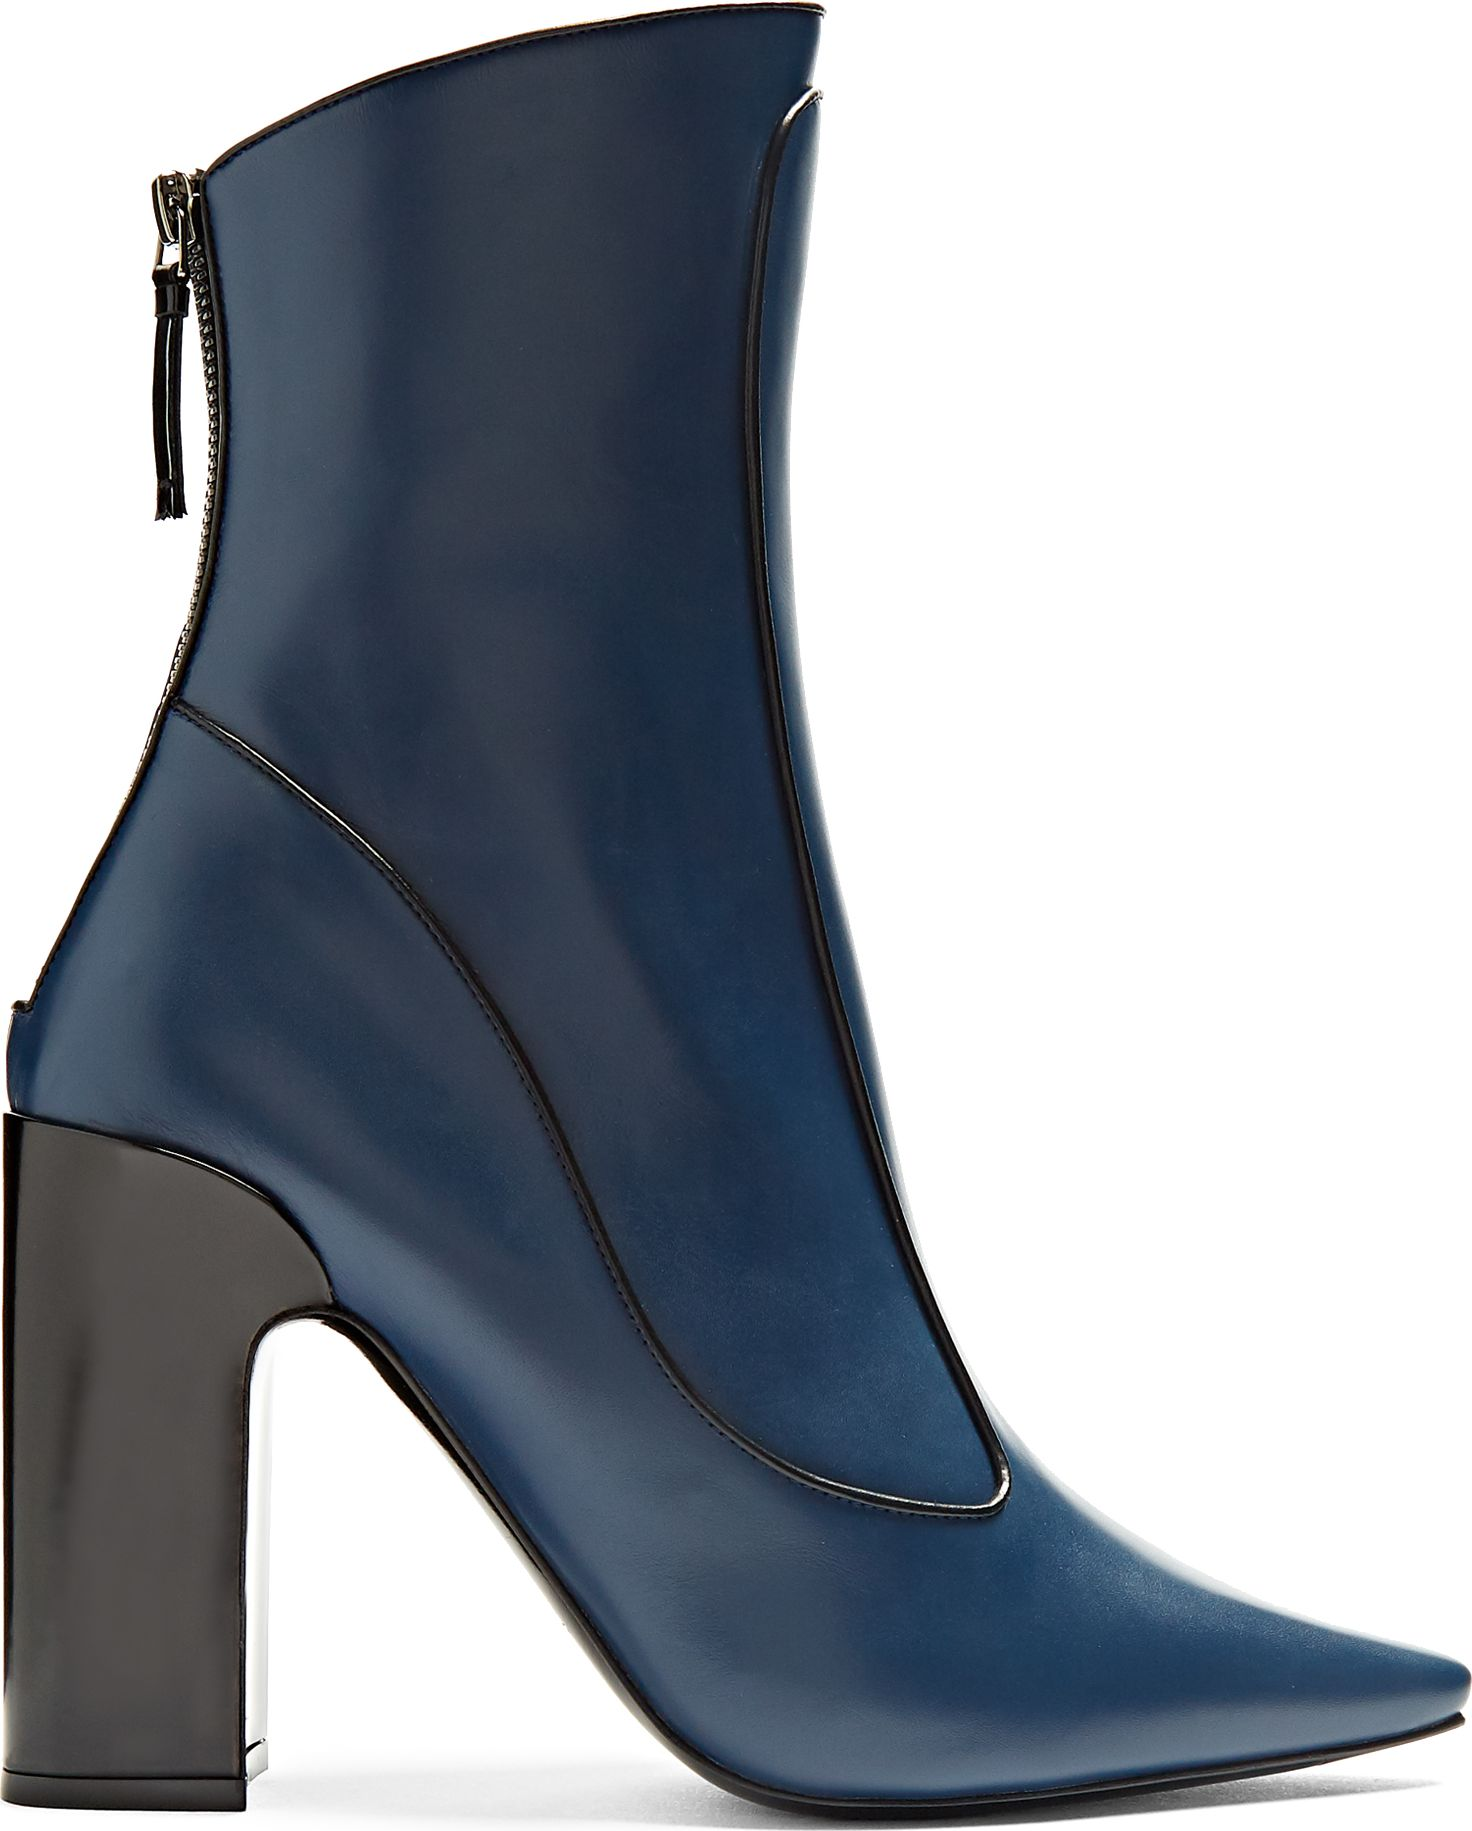 616d8220d8cac Fabrizio Viti Winter Timeless leather ankle boots - Mkt